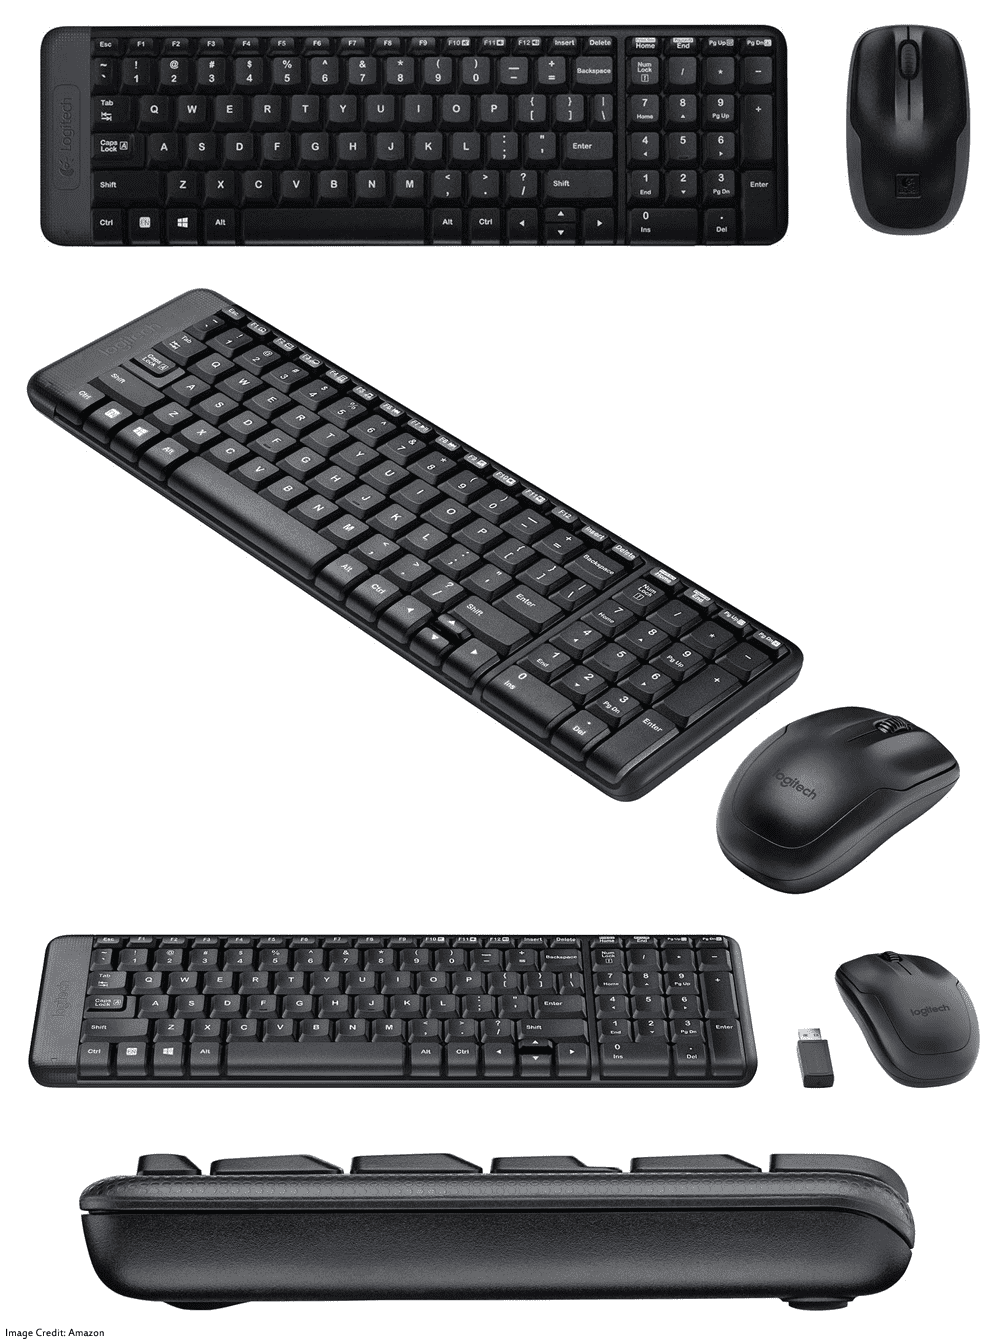 The image of Logitech MK215 wireless keyboard and mouse combo. Its color is black. Moreover, It has a warranty of 1 year. Furthermore, The keyboard has total of 101 keys and the mouse has total of 3 buttons.